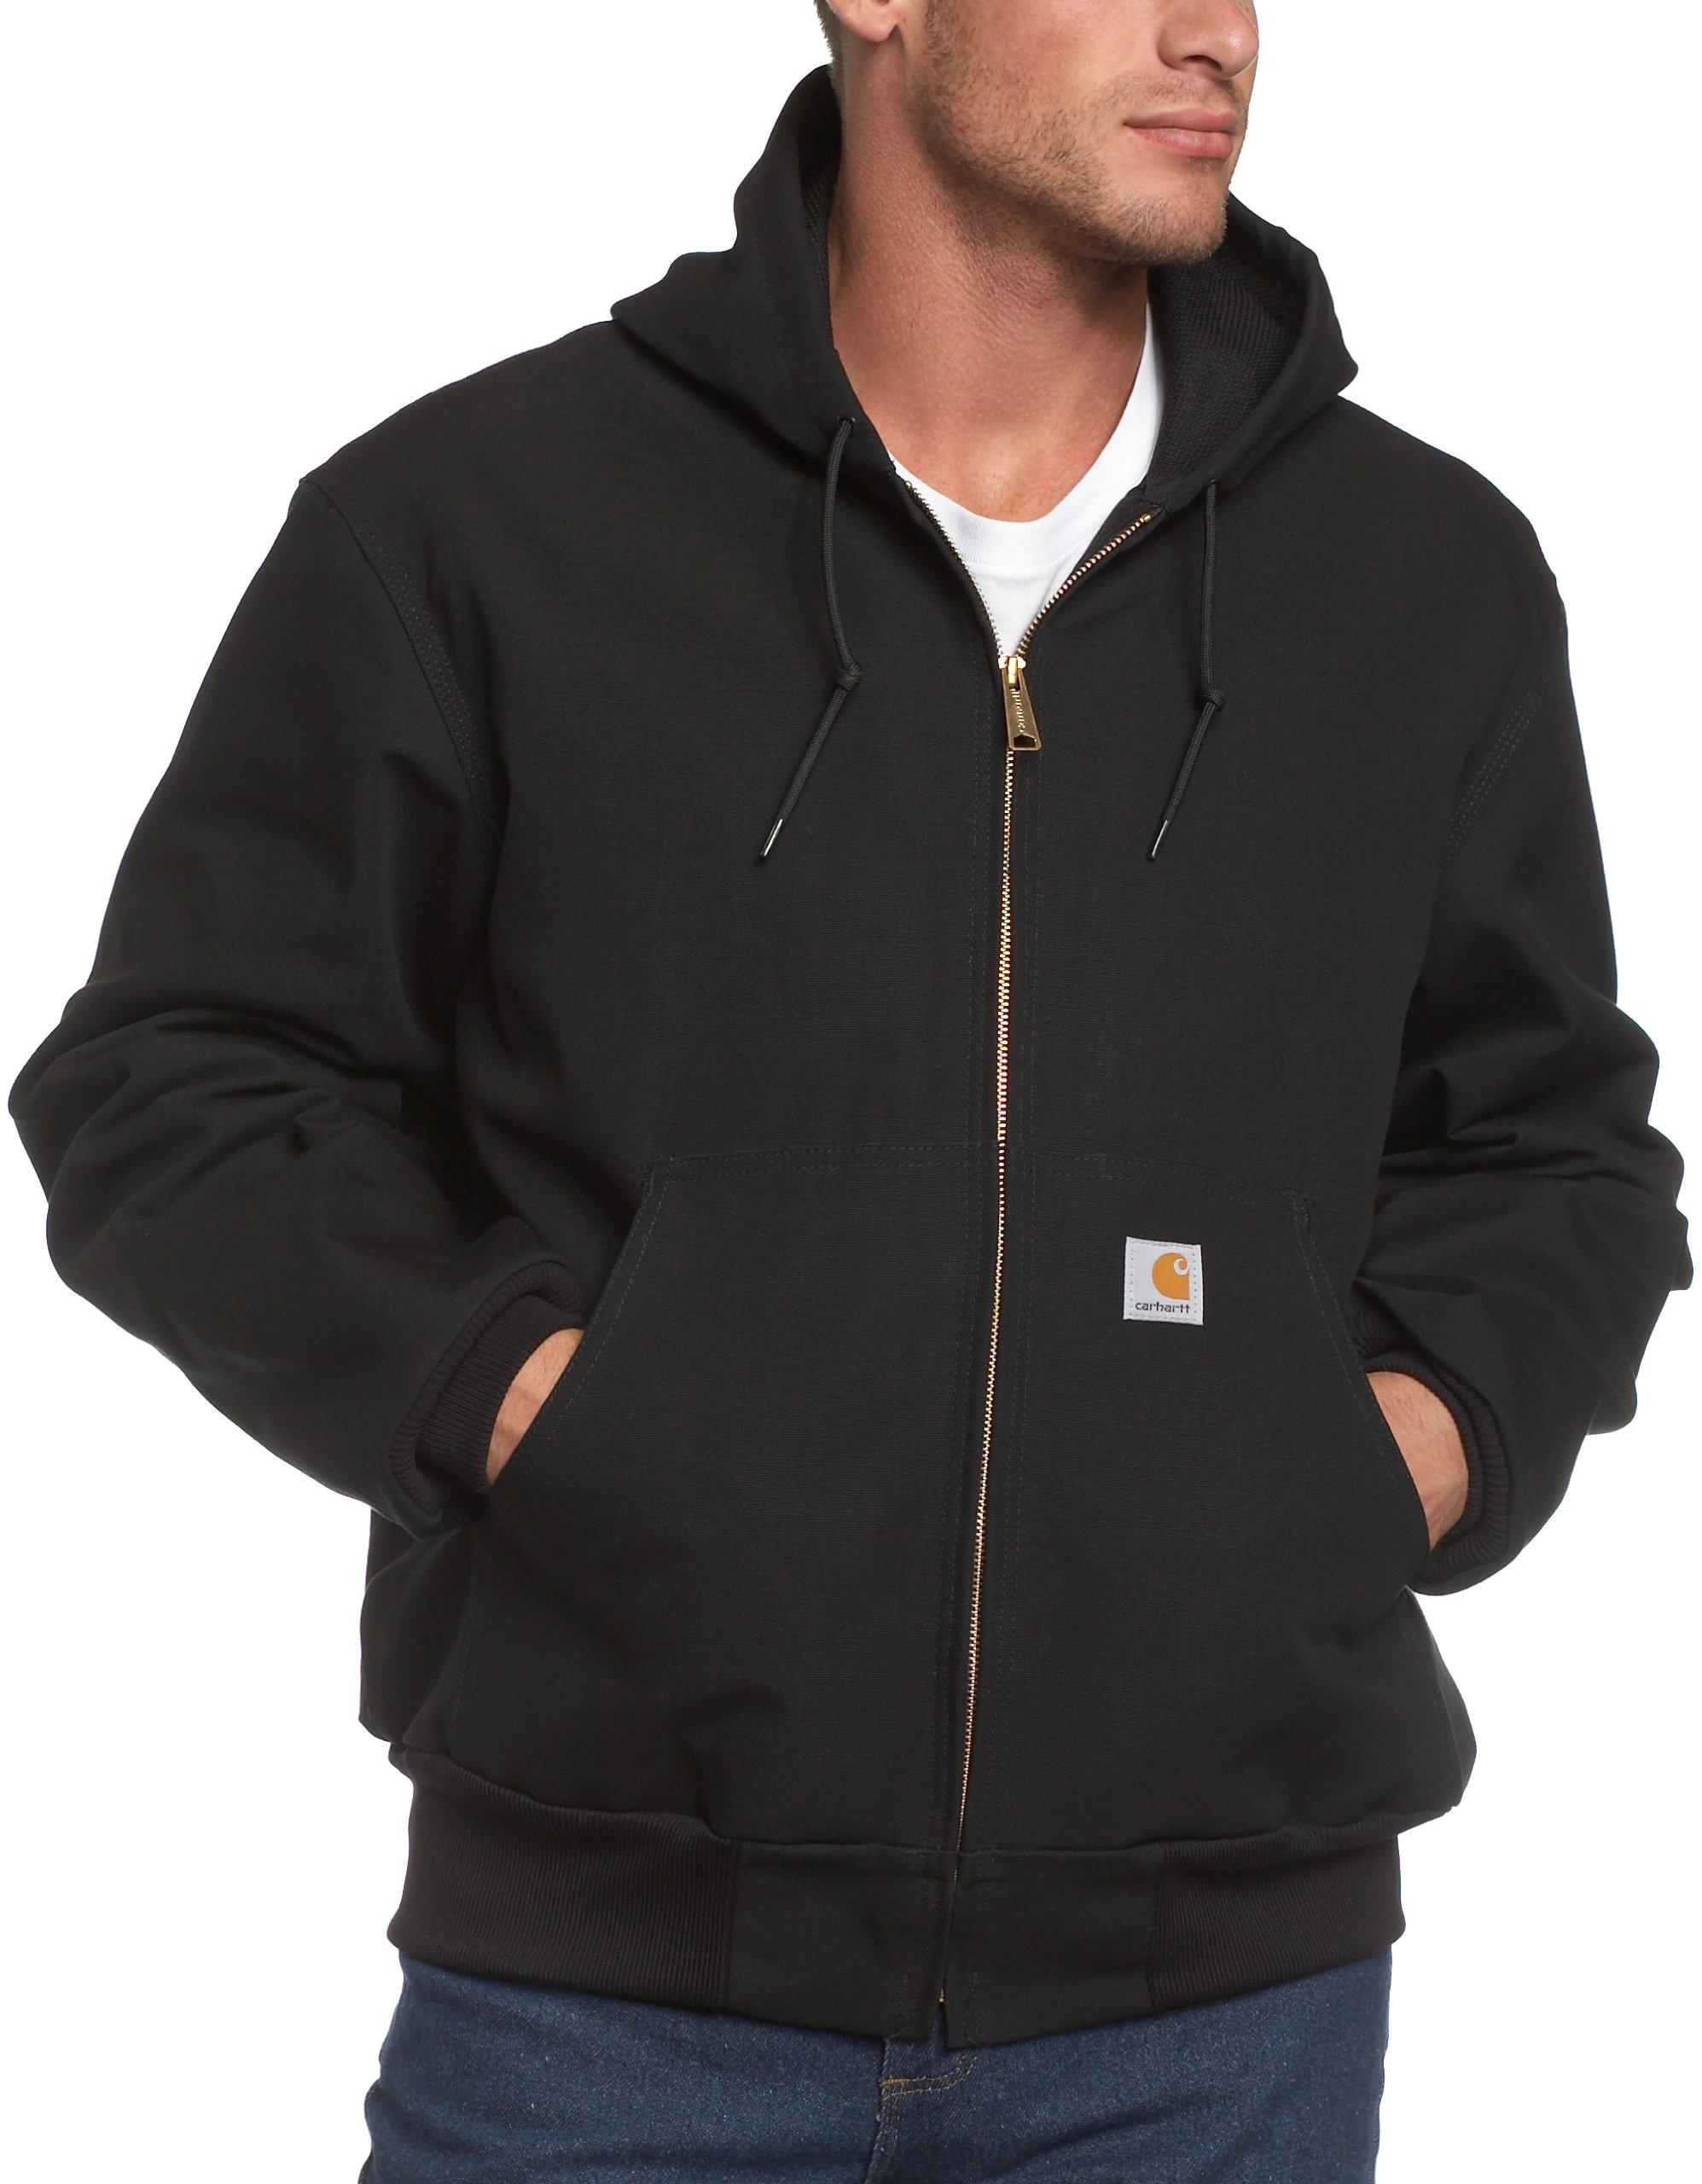 Carhartt Men's Thermal Lined Duck Active Jacket J131 (Regular and Big & Tall Sizes), Black, Large by Carhartt